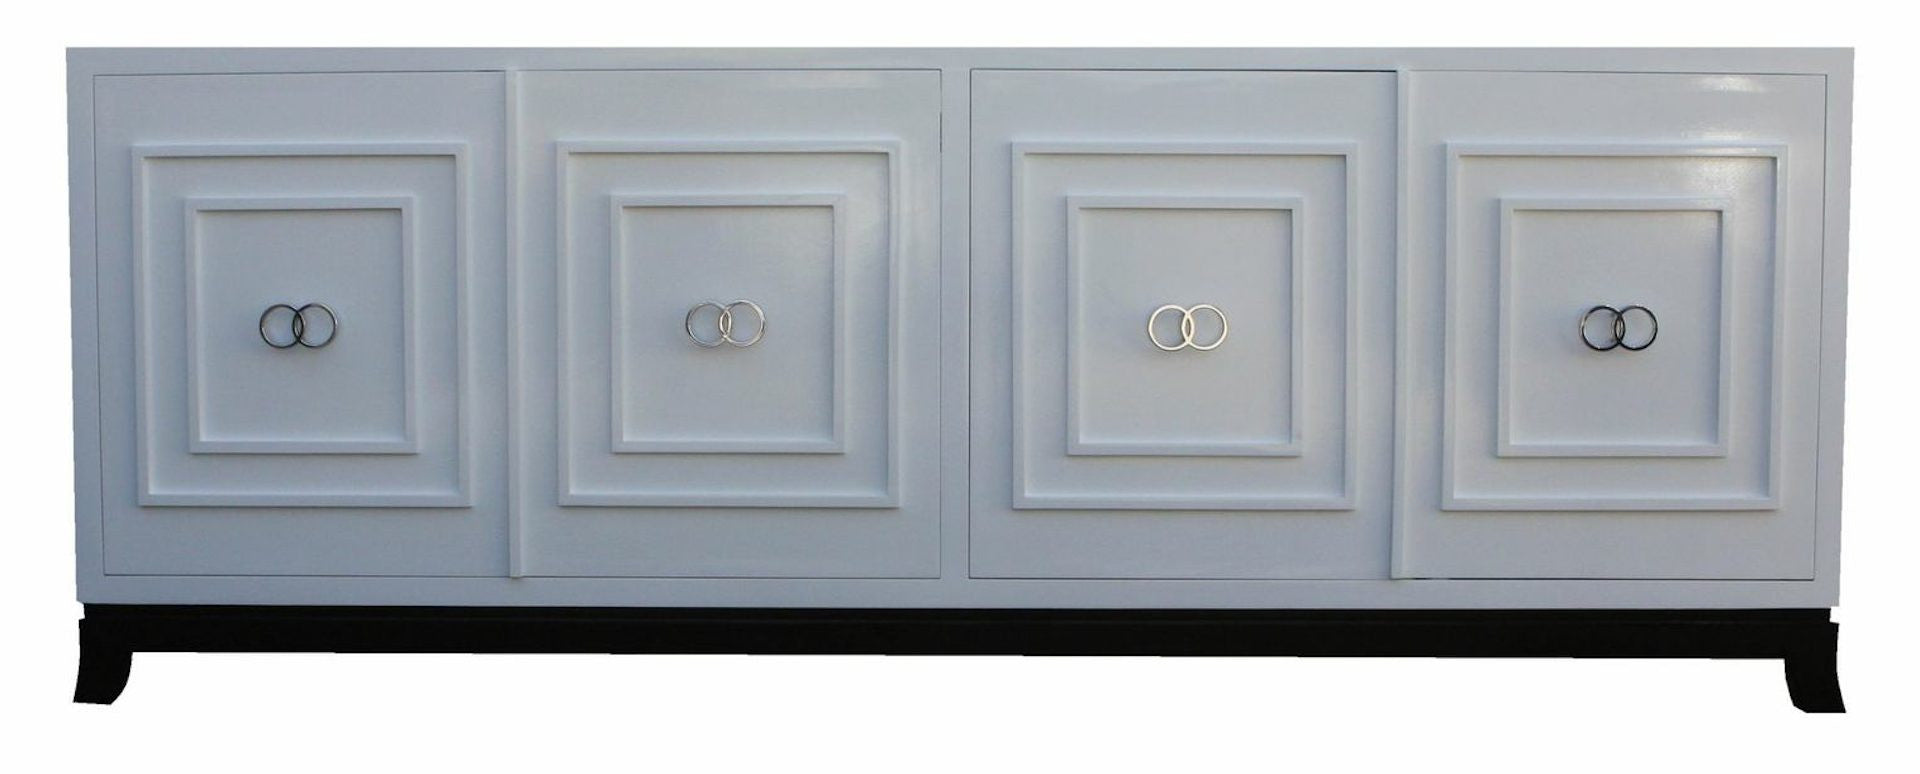 St. Croix Modern White Lacquer Credenza – Mortise & Tenon on modern sideboards and hutches, industrial modern credenzas, country style credenzas, post modern credenzas, modern sideboards with sliding door, made in usa modern credenzas, consoles and credenzas,